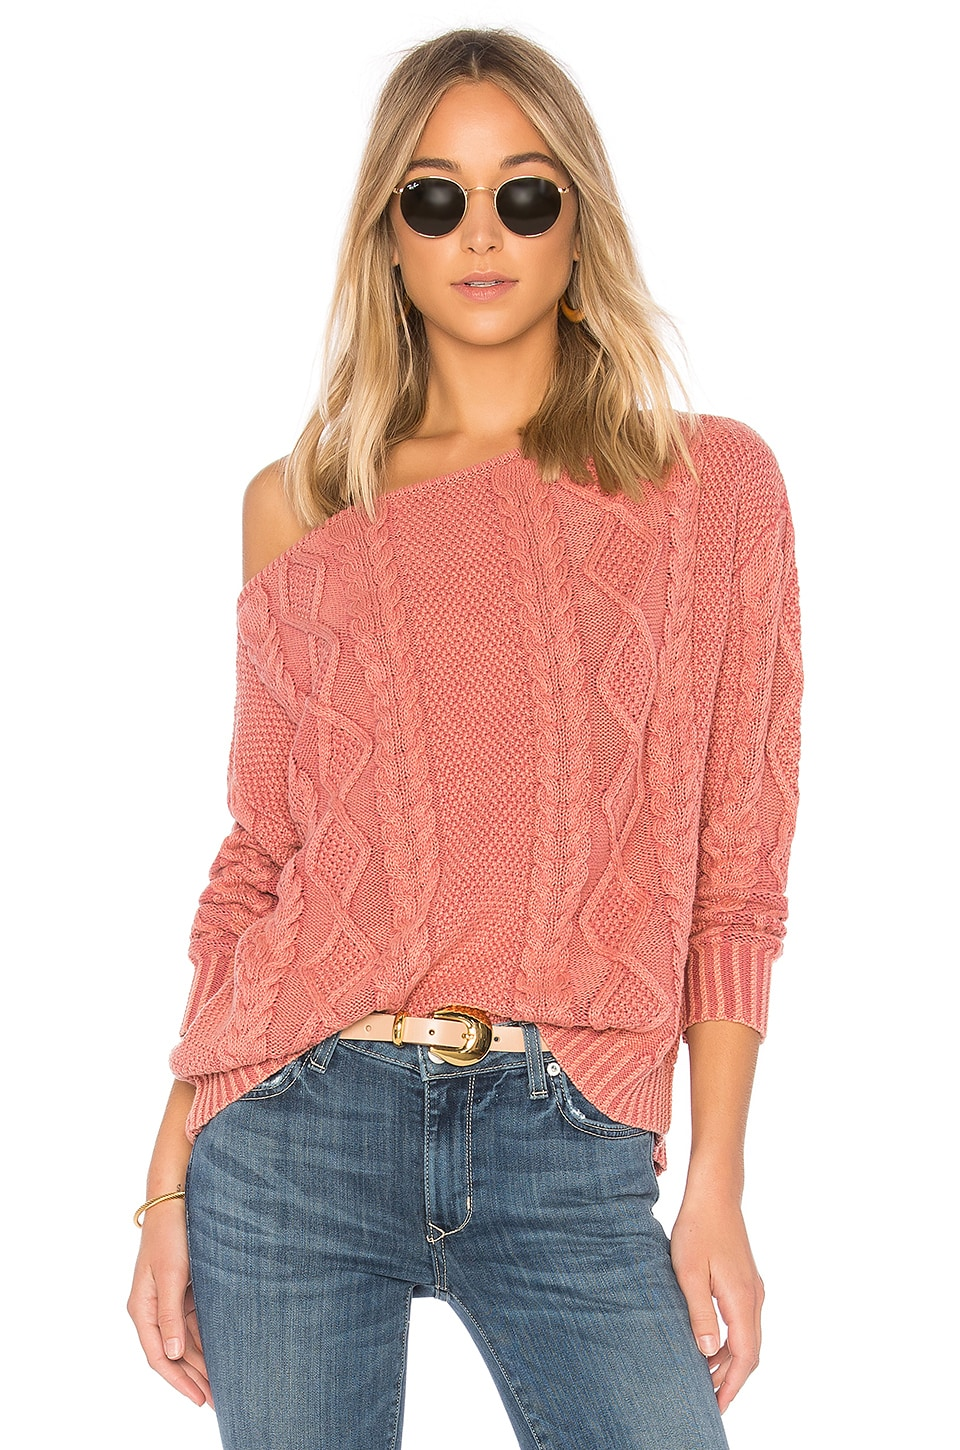 Callahan Cable Knit Off the Shoulder Sweater in Rose | REVOLVE